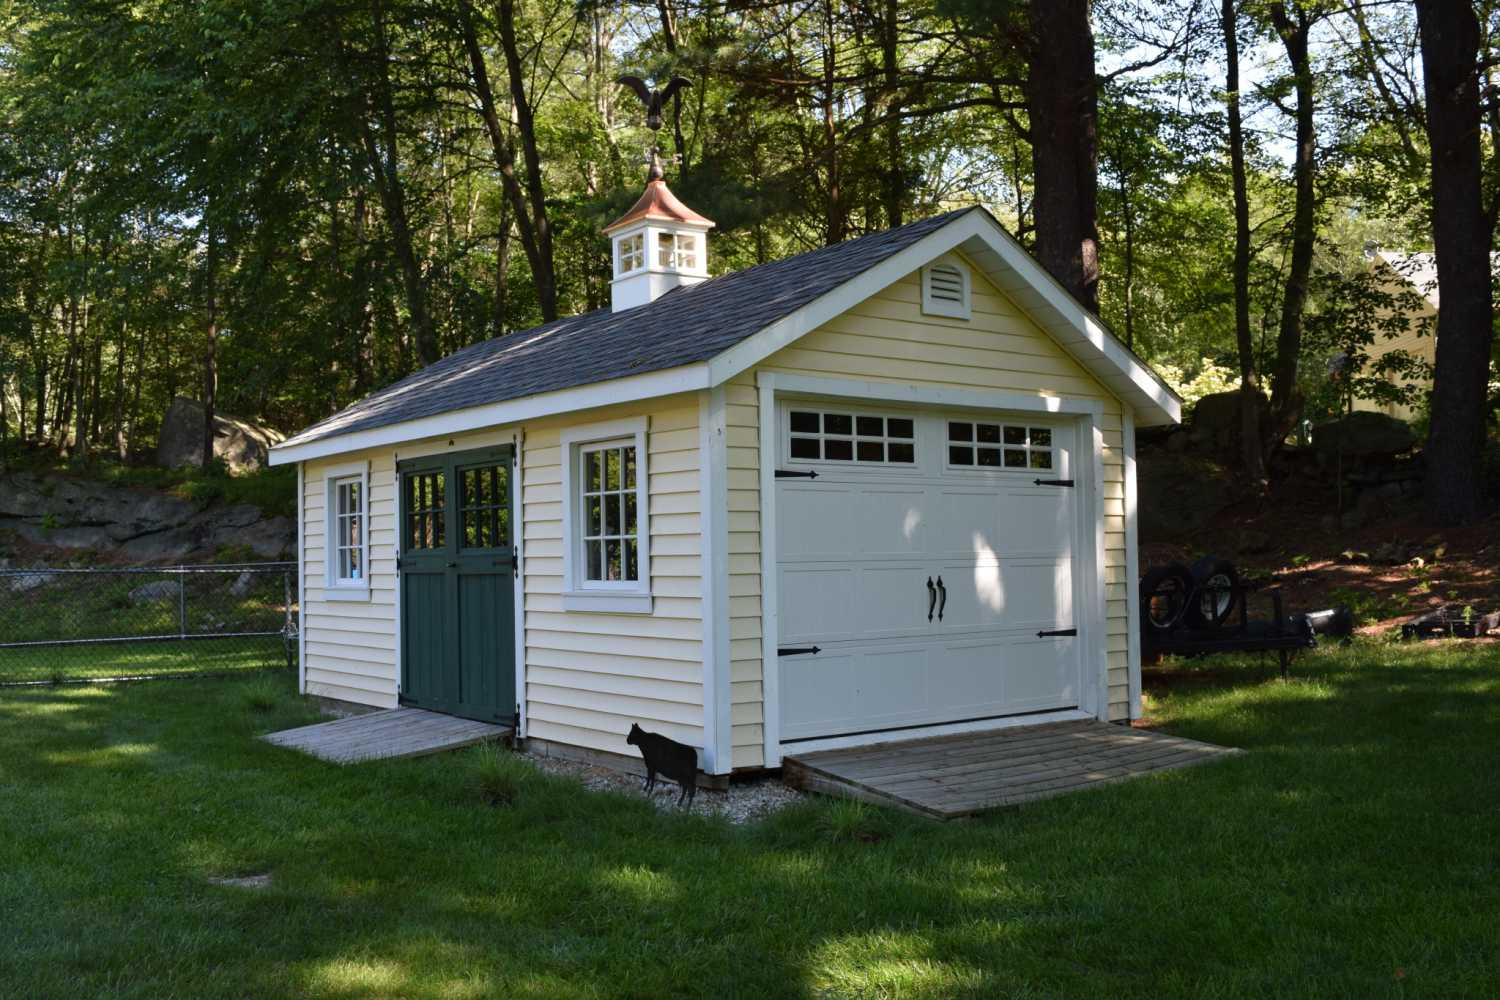 gardens awesome kit diy from greenhousemegastore sheds greenhouse ideas pin com shed she combi storage